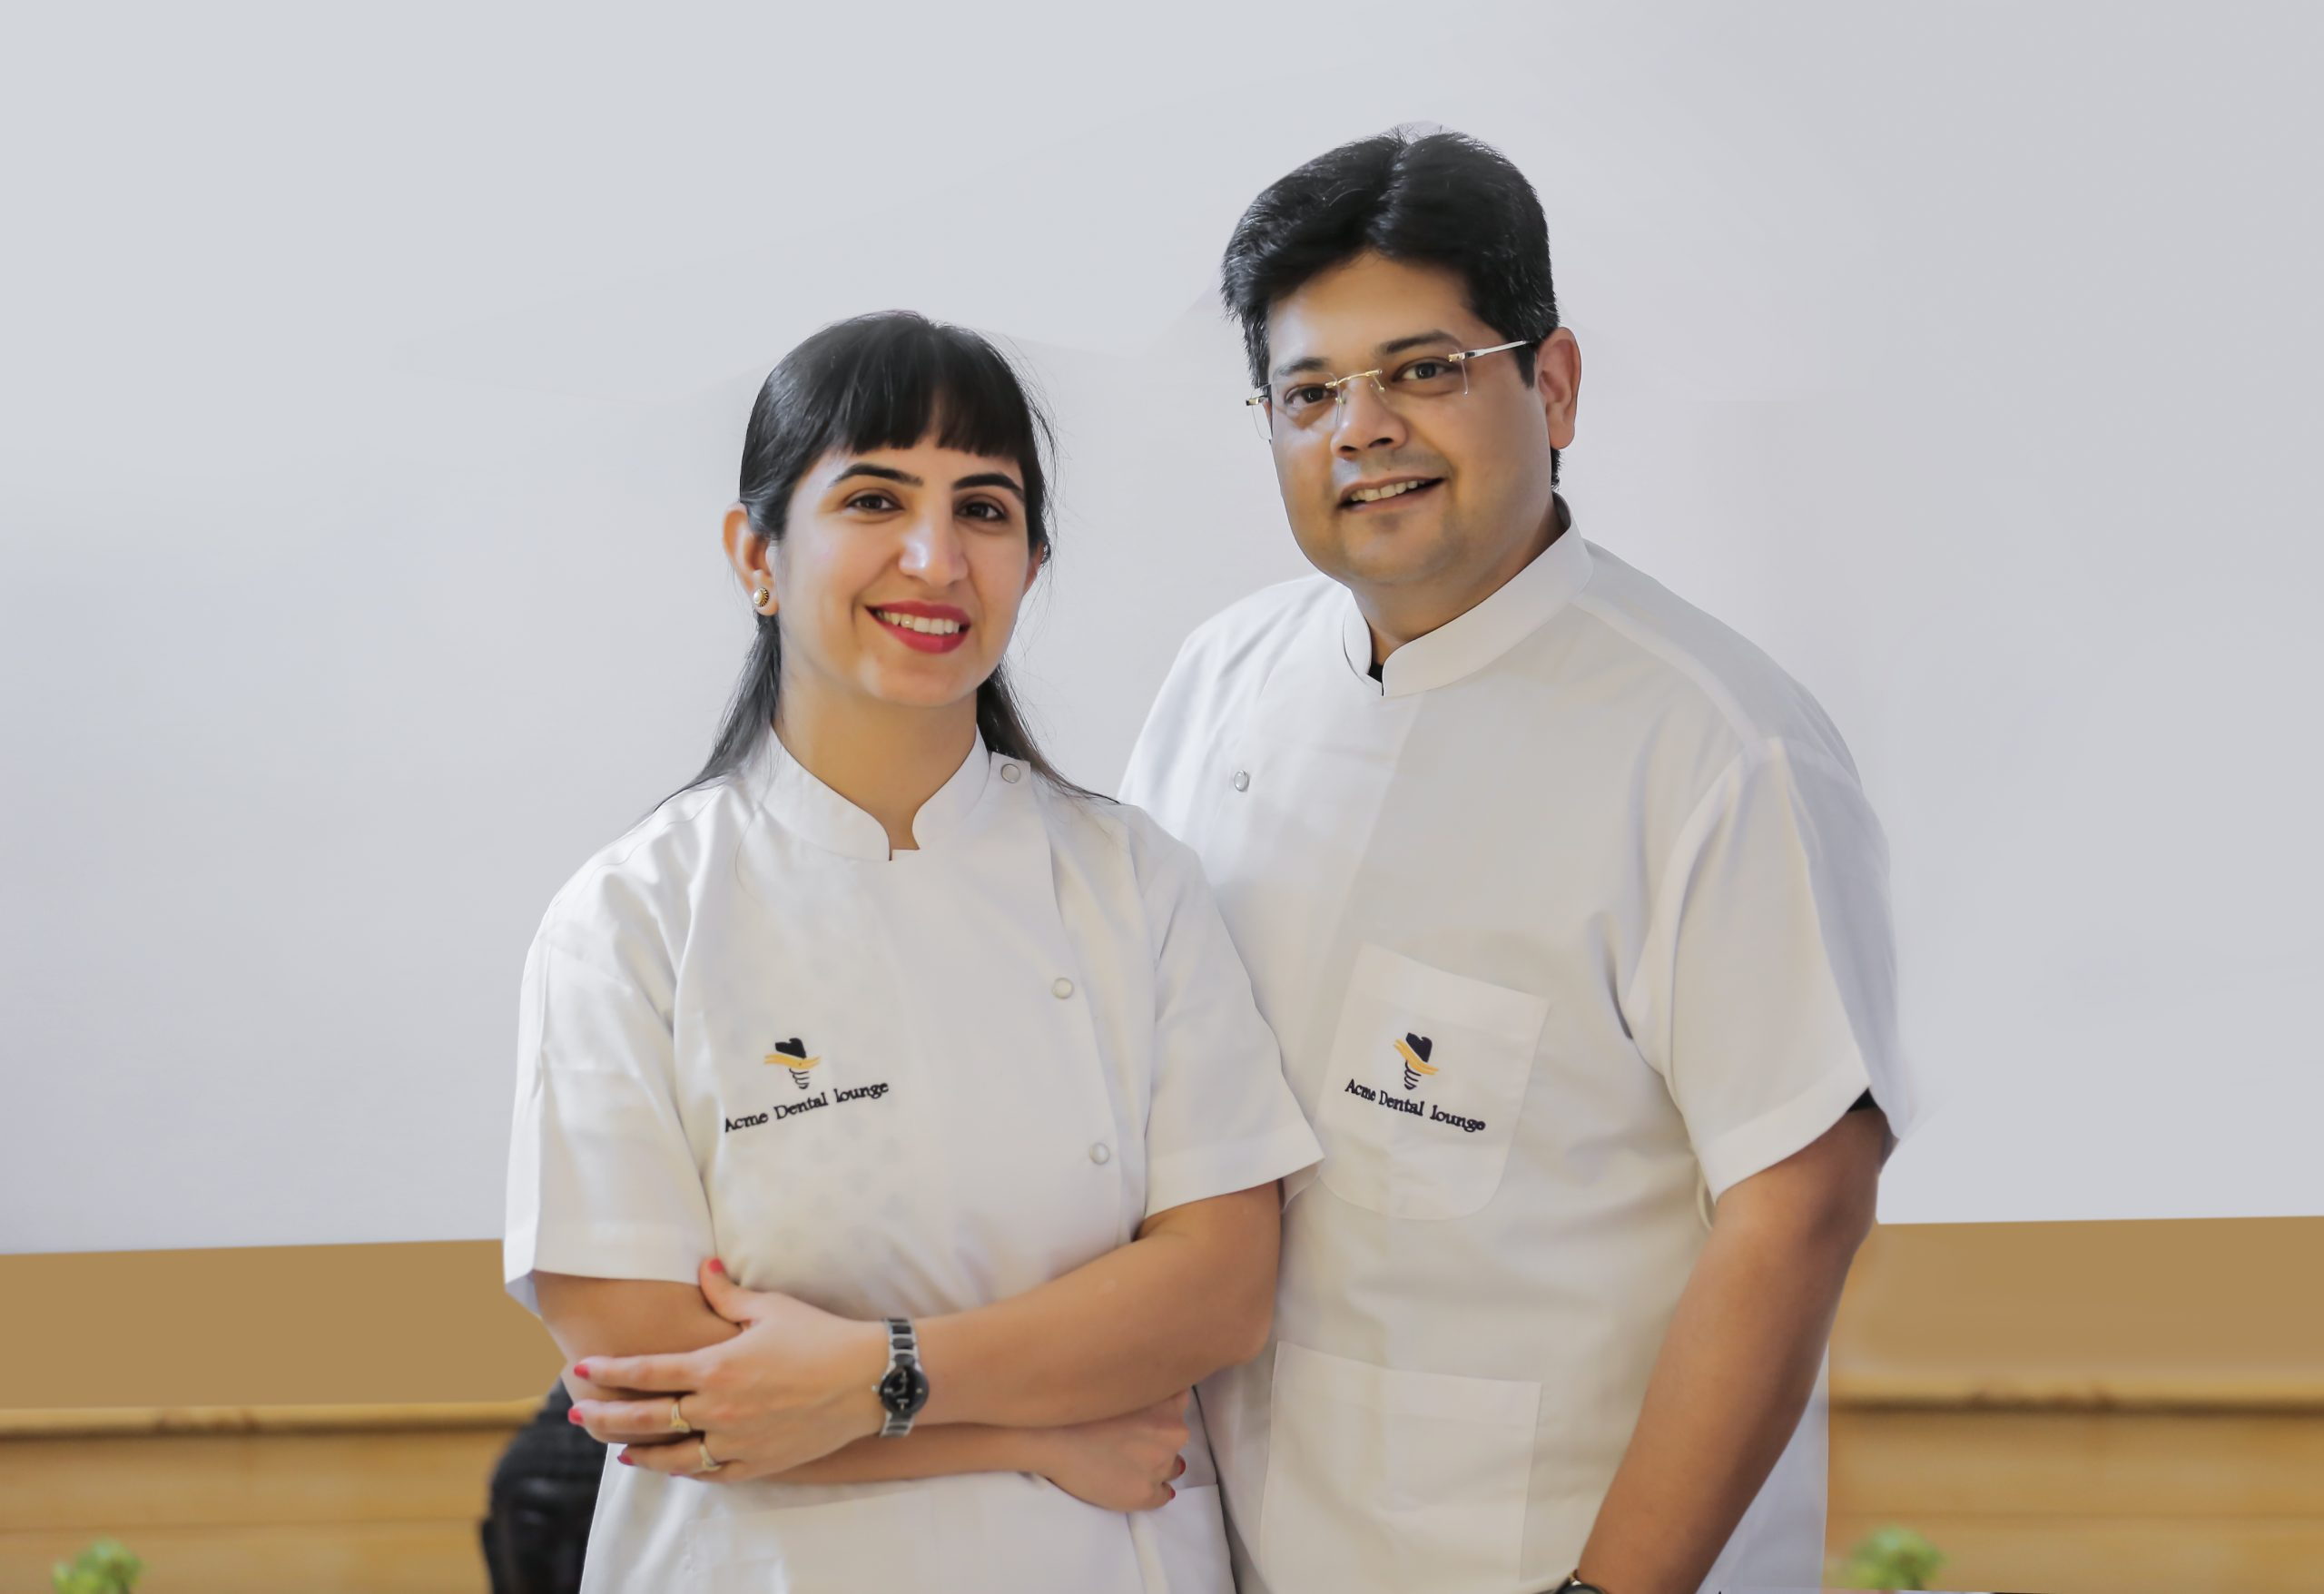 Acme Dental Mr& Mrs Gupta Photo